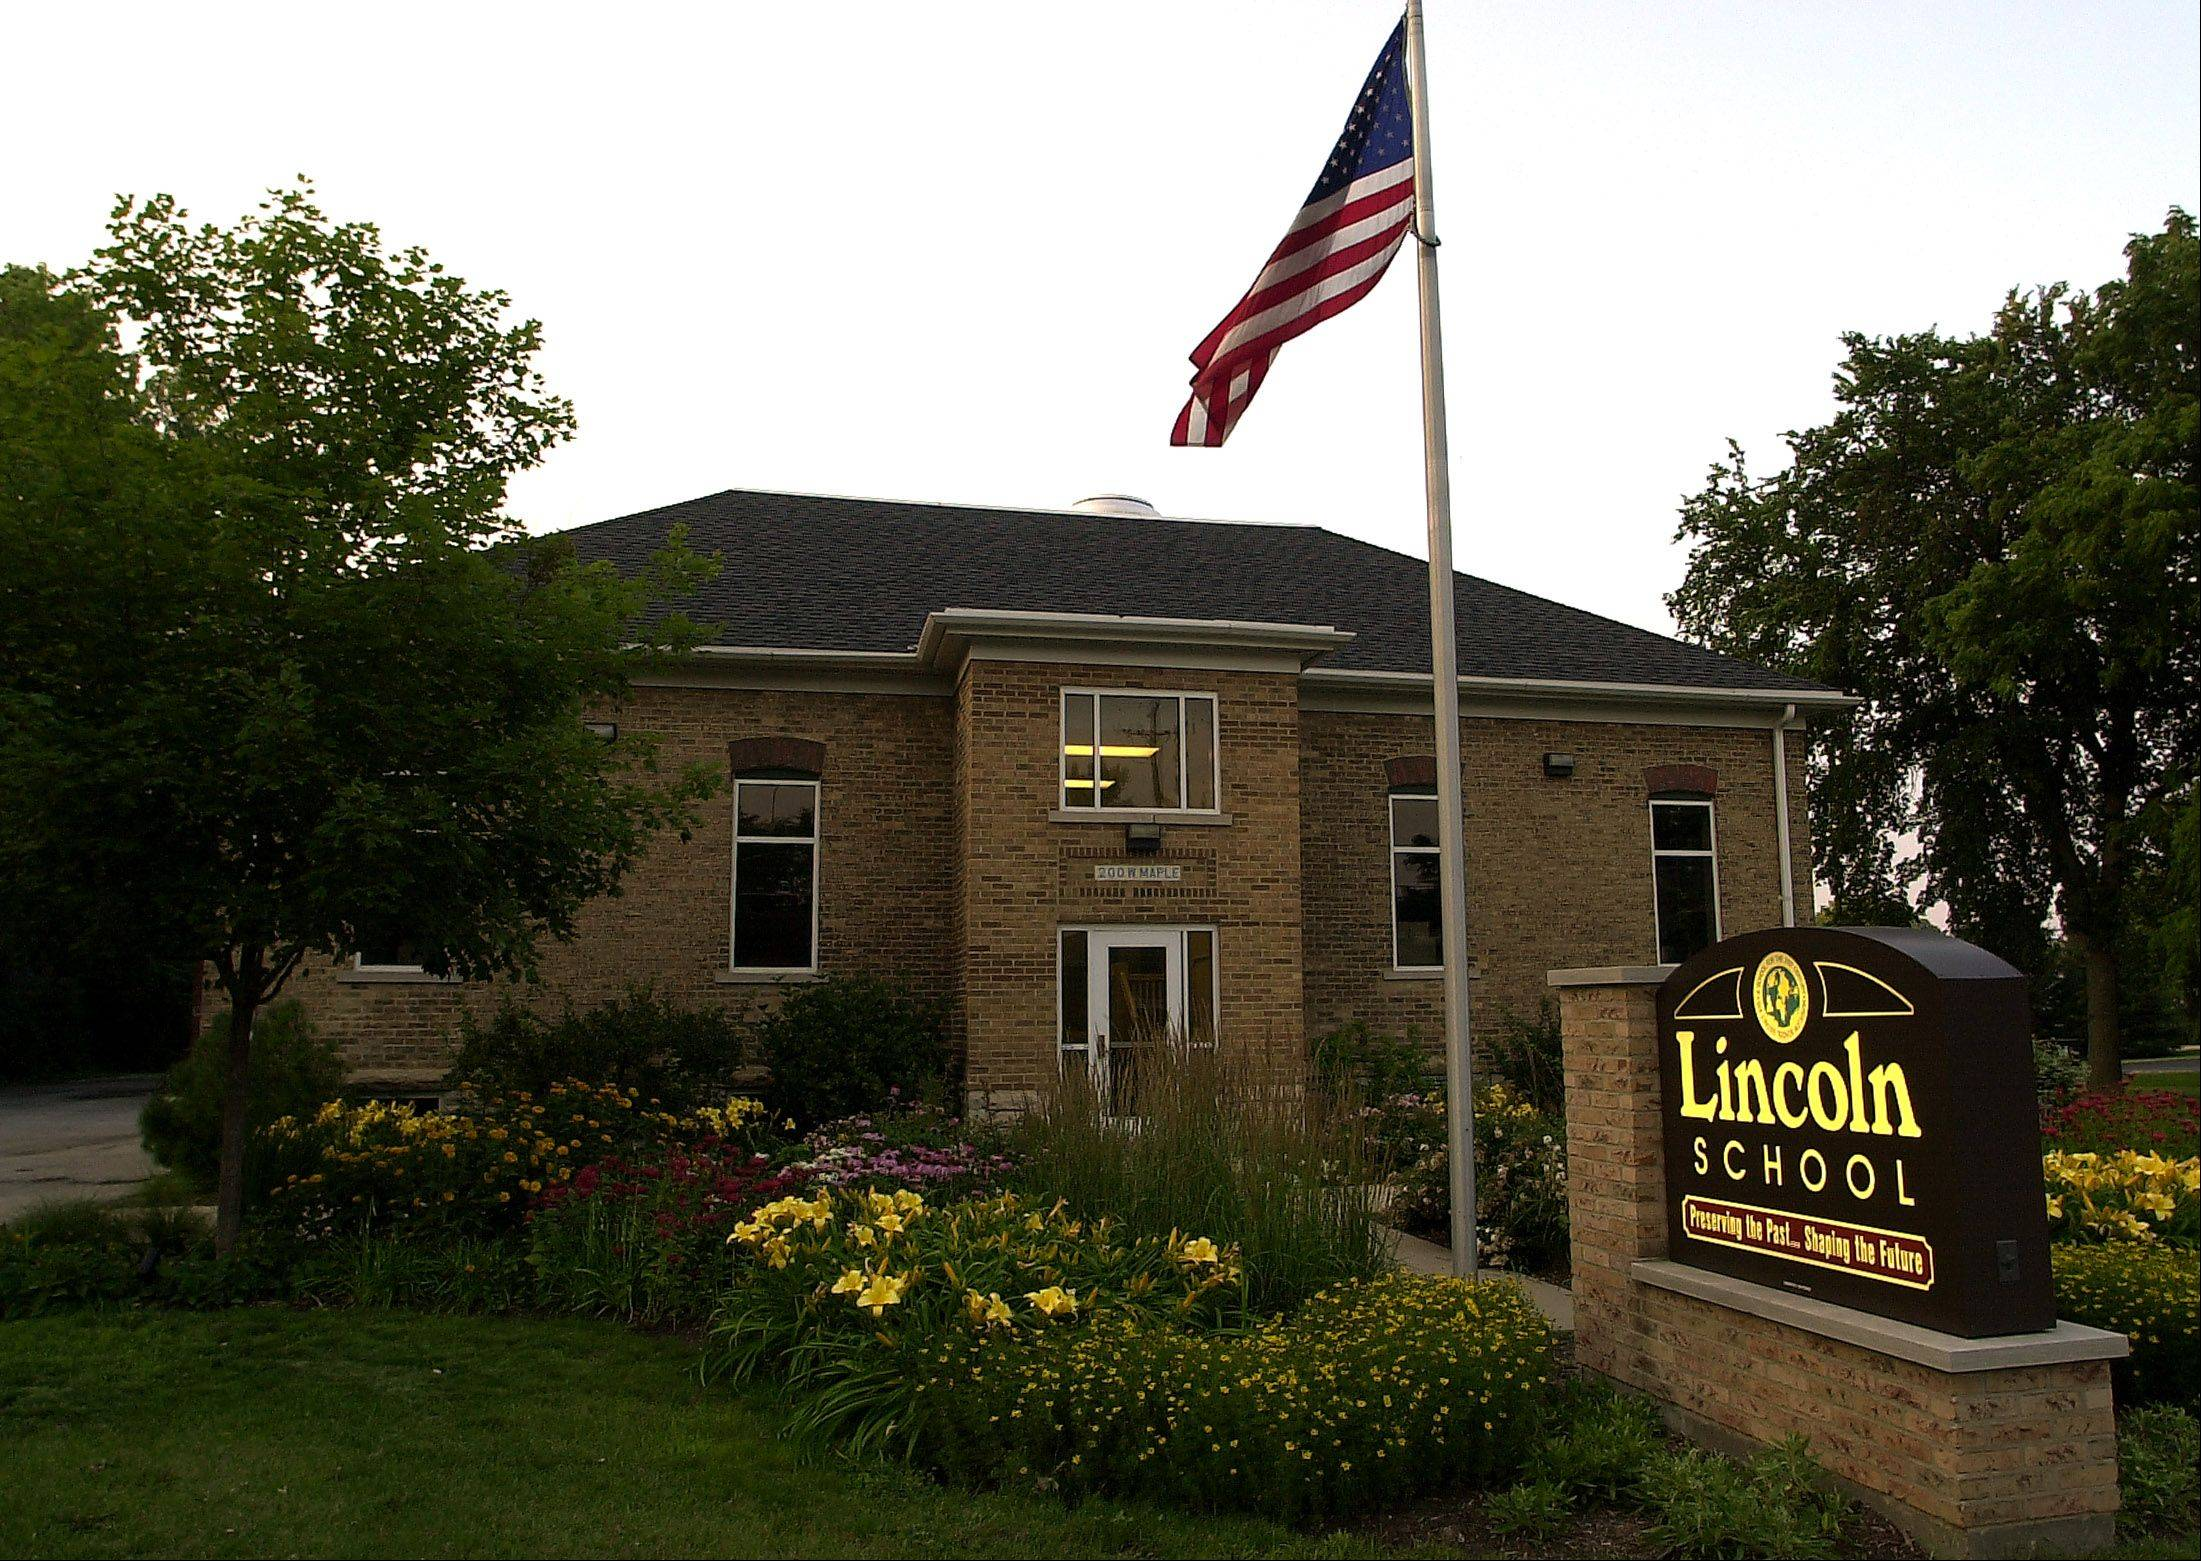 Lincoln School on Route 176 in Mundelein was built in 1894 as a two-room country school. Hawthorn District 73 may lease an addition on the northeast side in the coming school year.